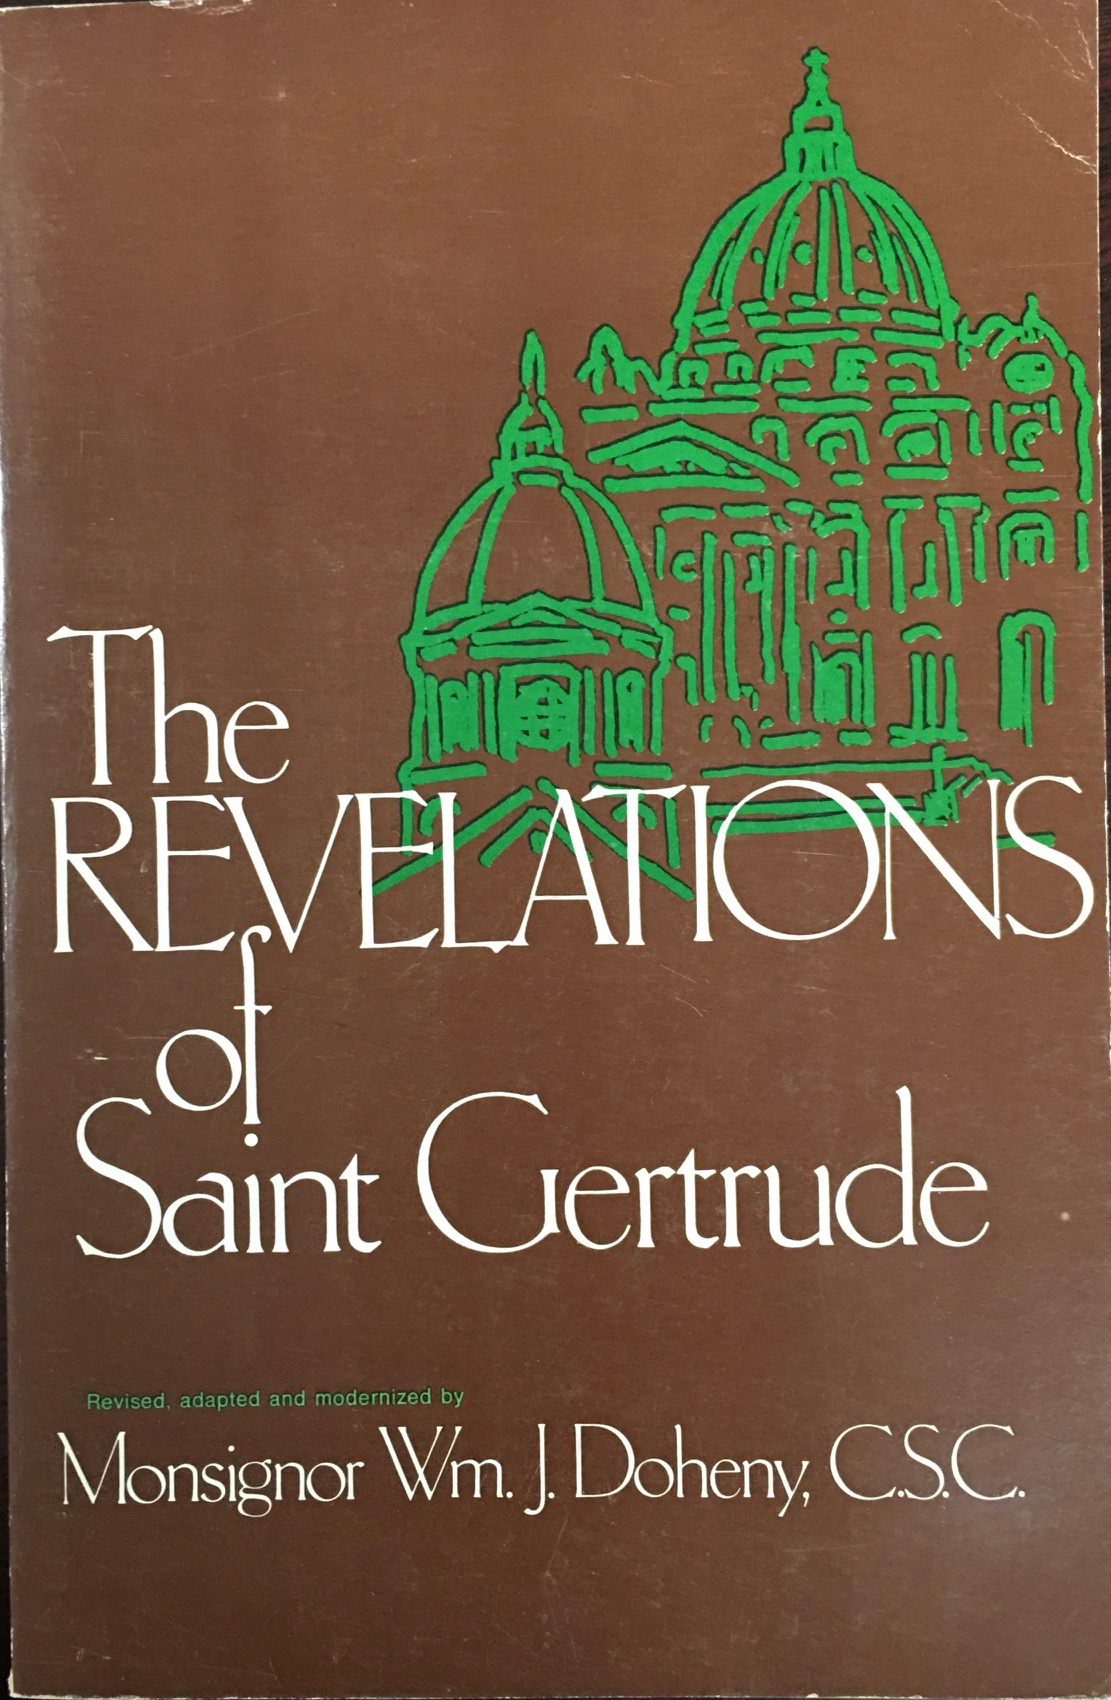 Image for The Revelations of Saint Gertrude (Revised, adaped and modernized)